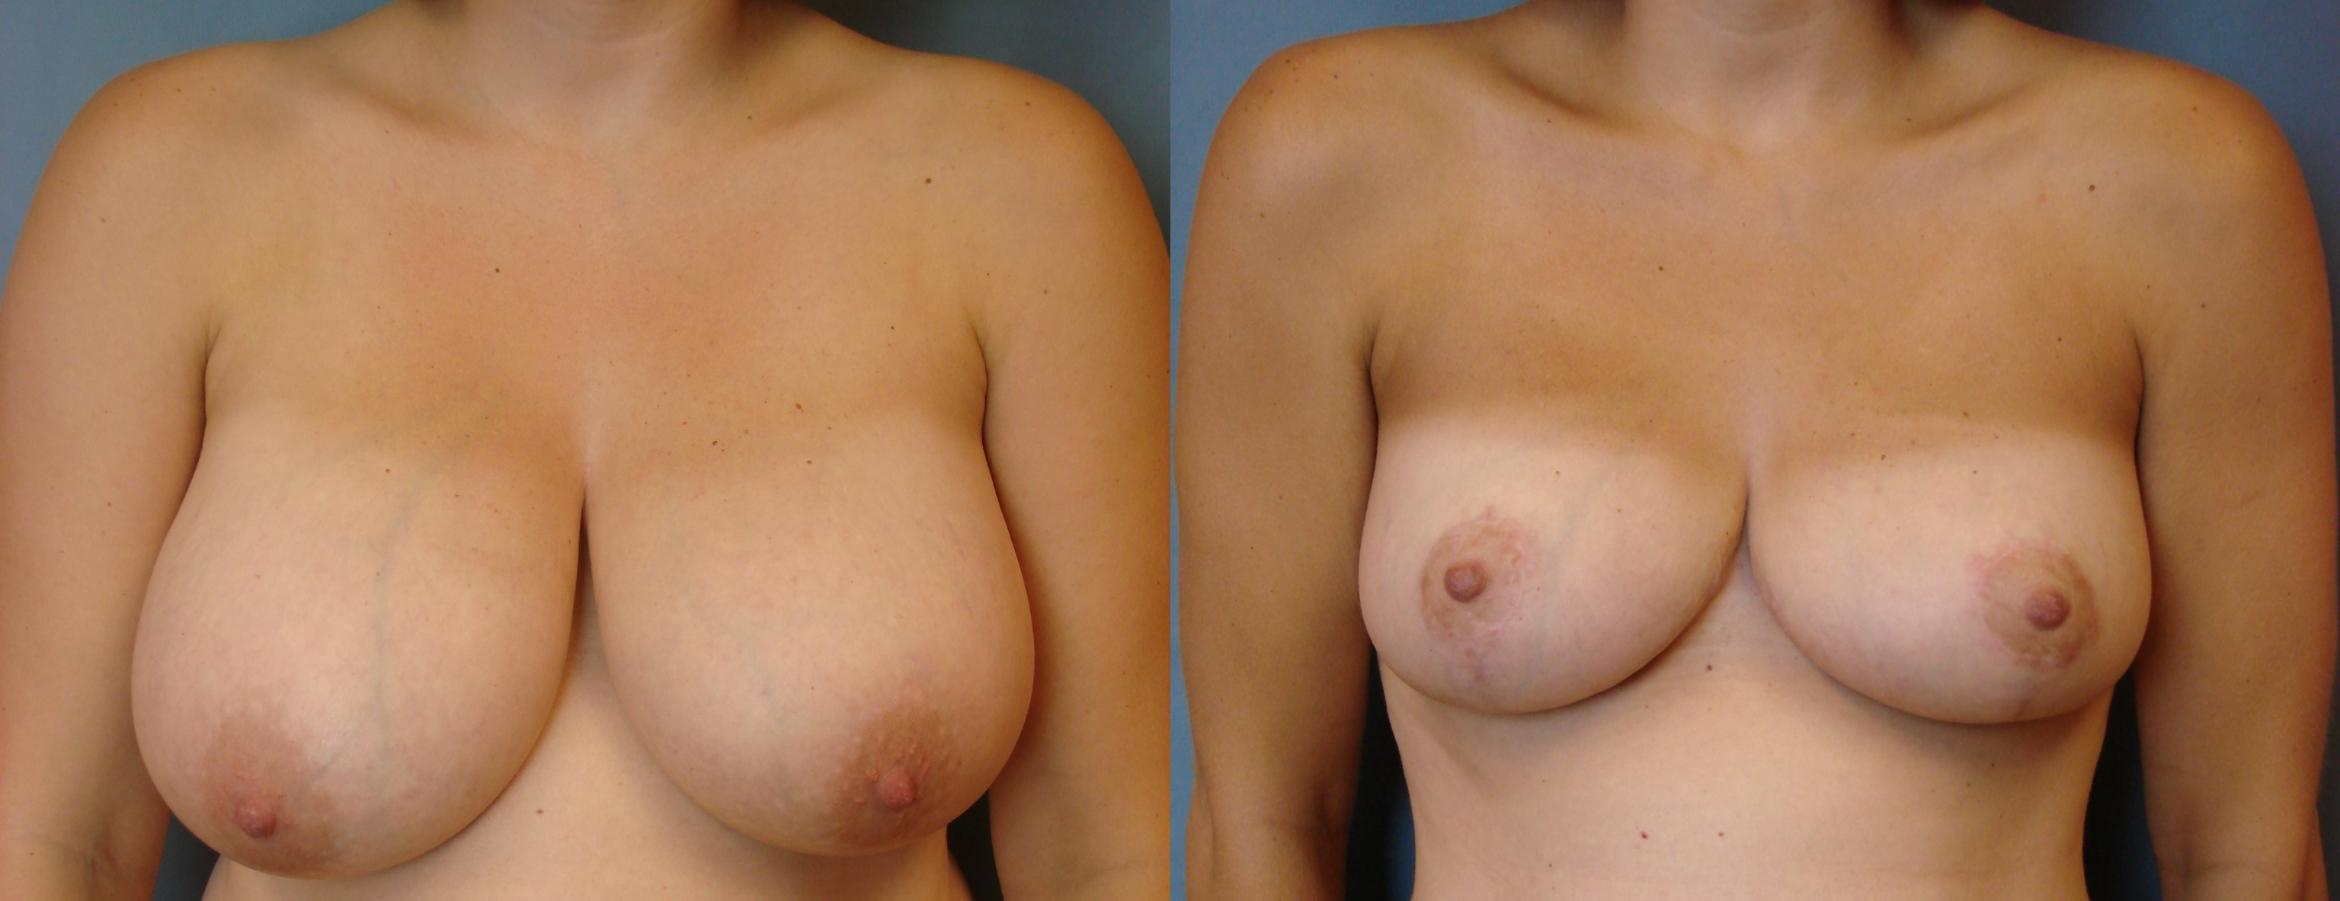 Breast Reduction Case 81 Before & After View #1 | Birmingham, AL | Dr. Michael S. Beckenstein